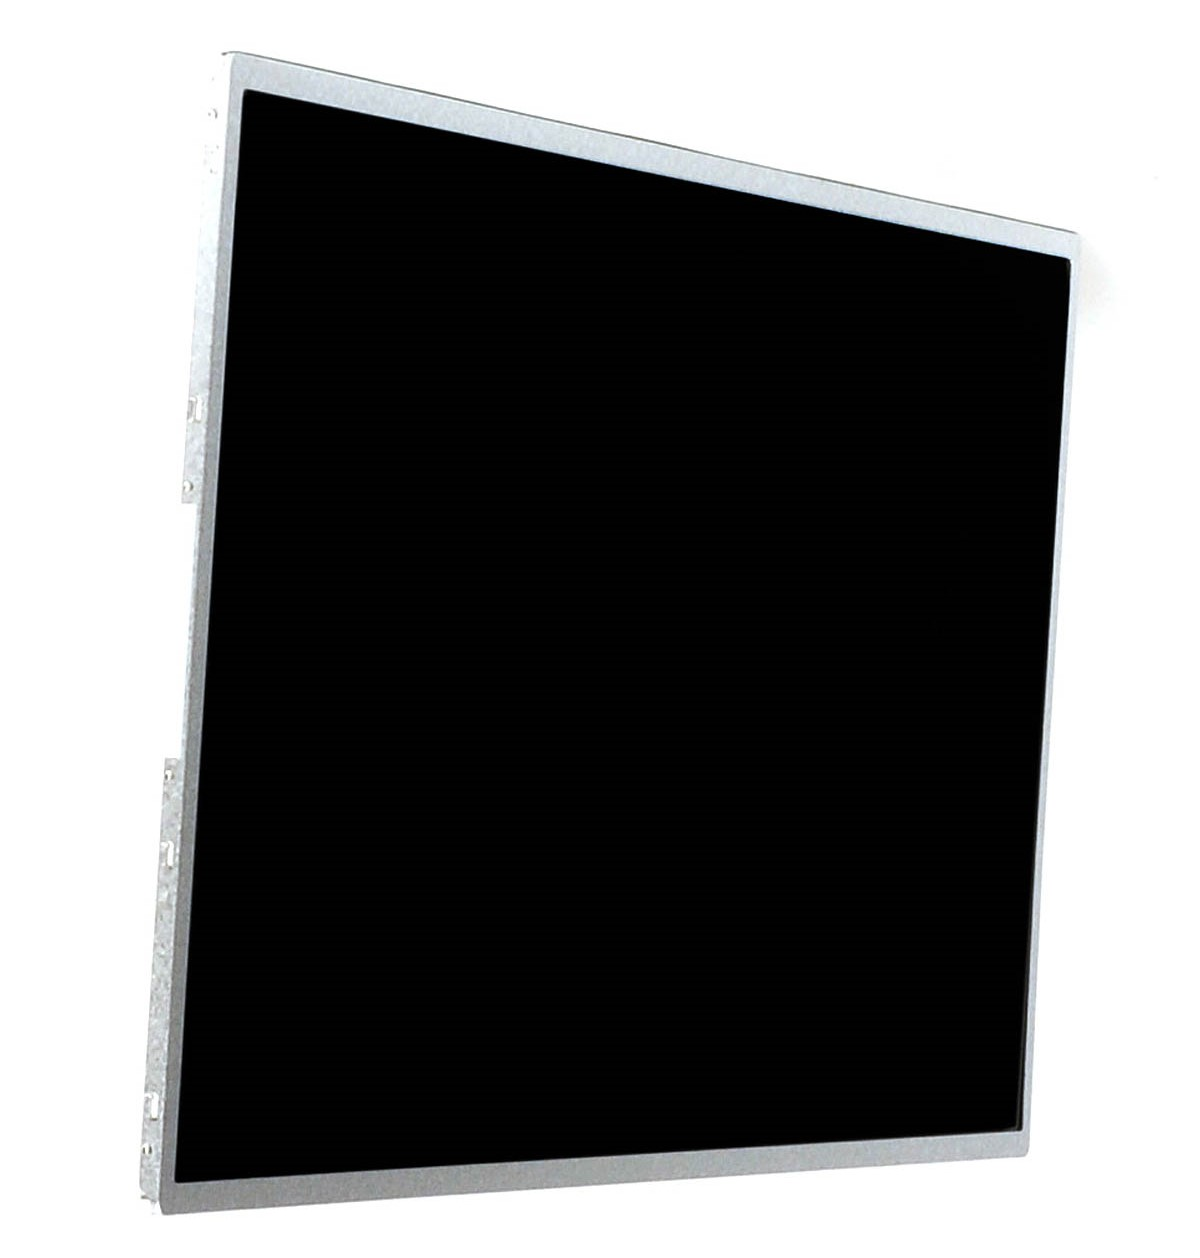 LAPTOP-LCD-SCREEN-FOR-TOSHIBA-SATELLITE-L755-S5161-15-6-034-WXGA-HD thumbnail 7